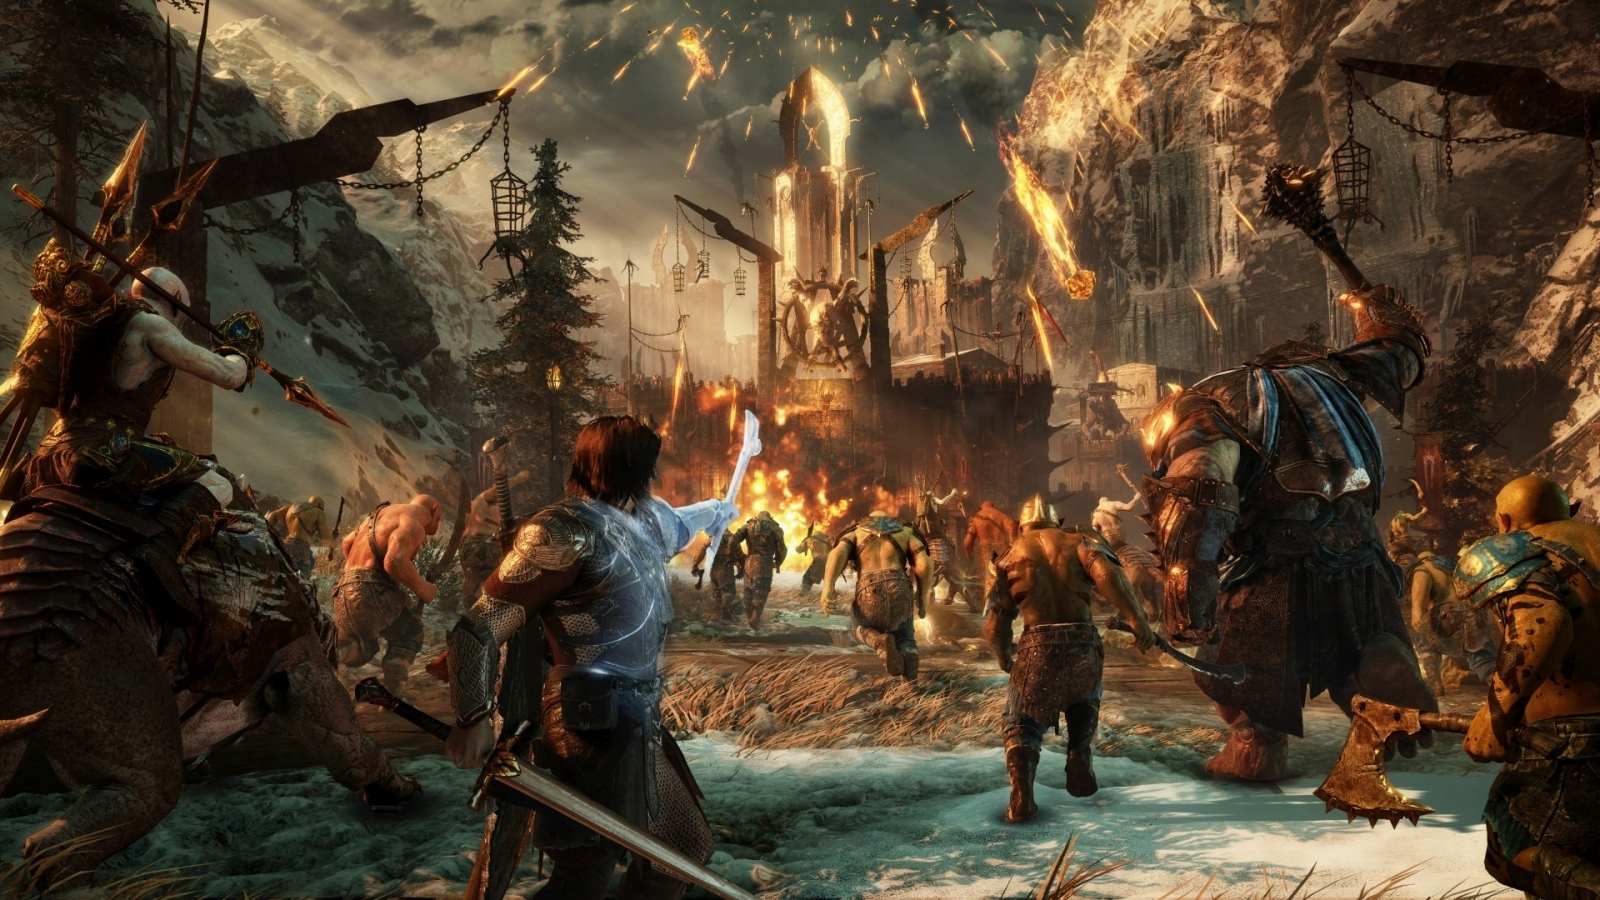 Middle-earth: Shadow of War Denuvo protection cracked in a day